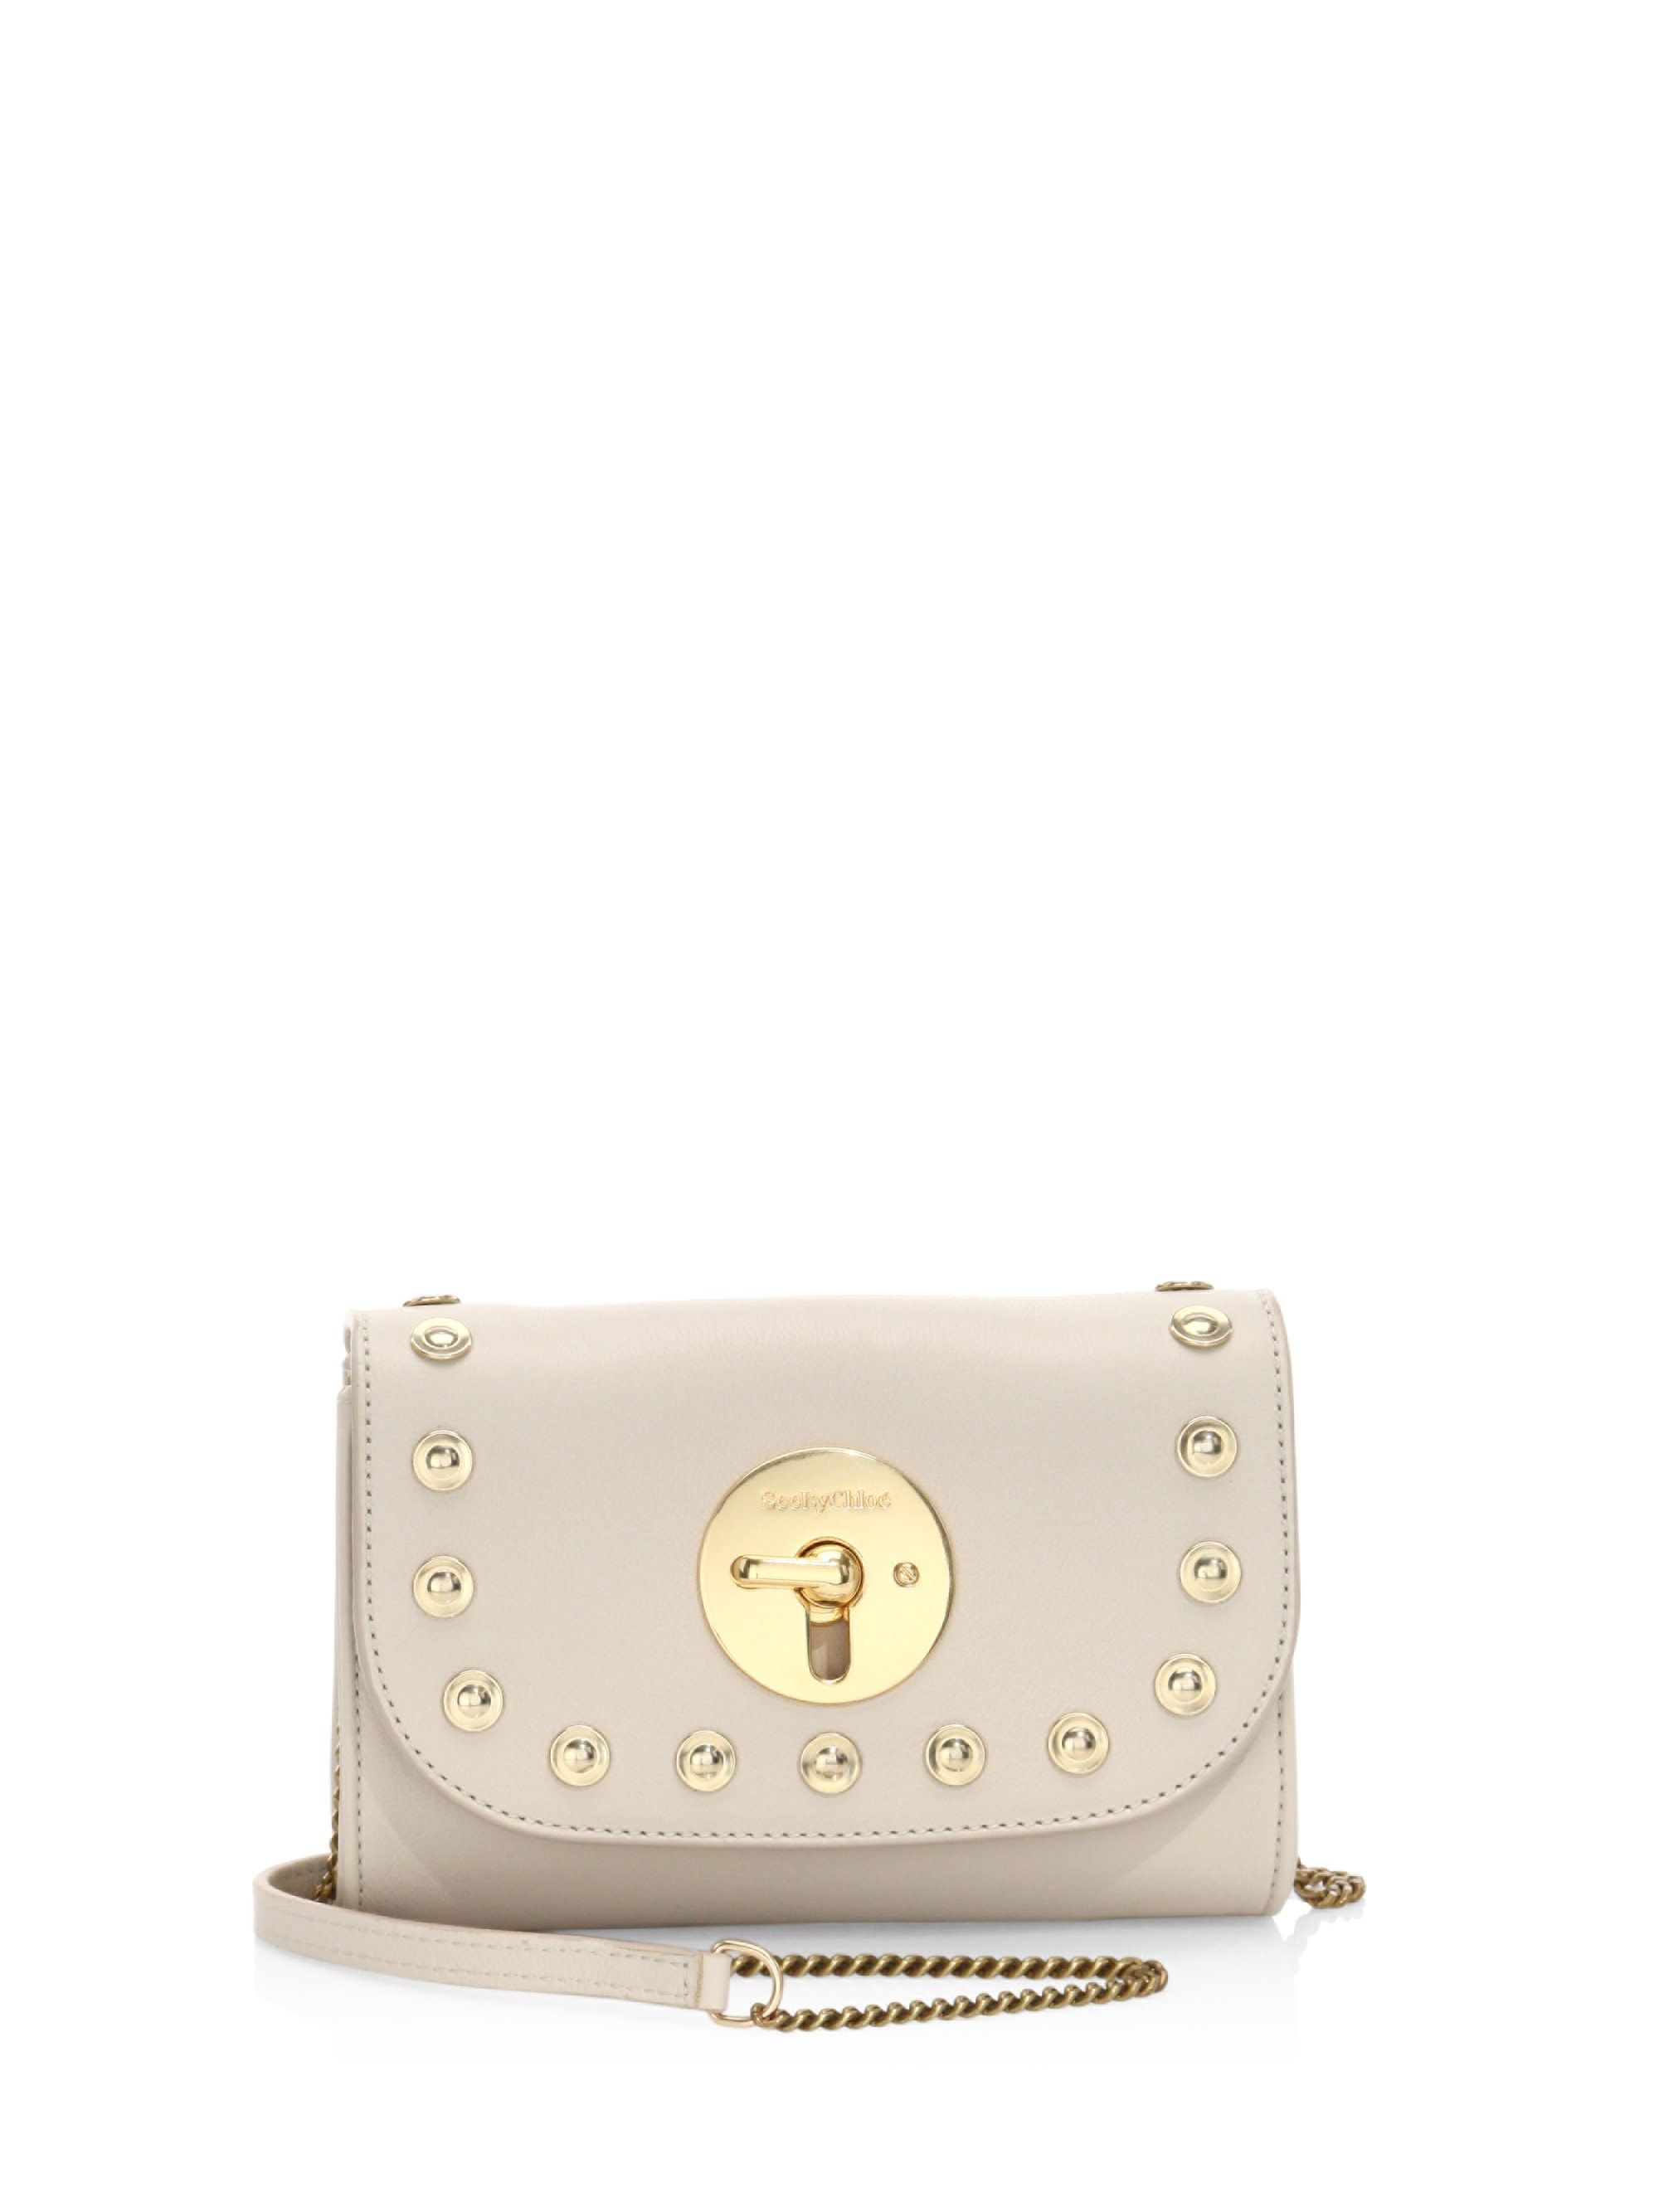 See By Chloé Lois Mini Studded Leather Crossbody - Light Beige One Size 6c91950ac074f